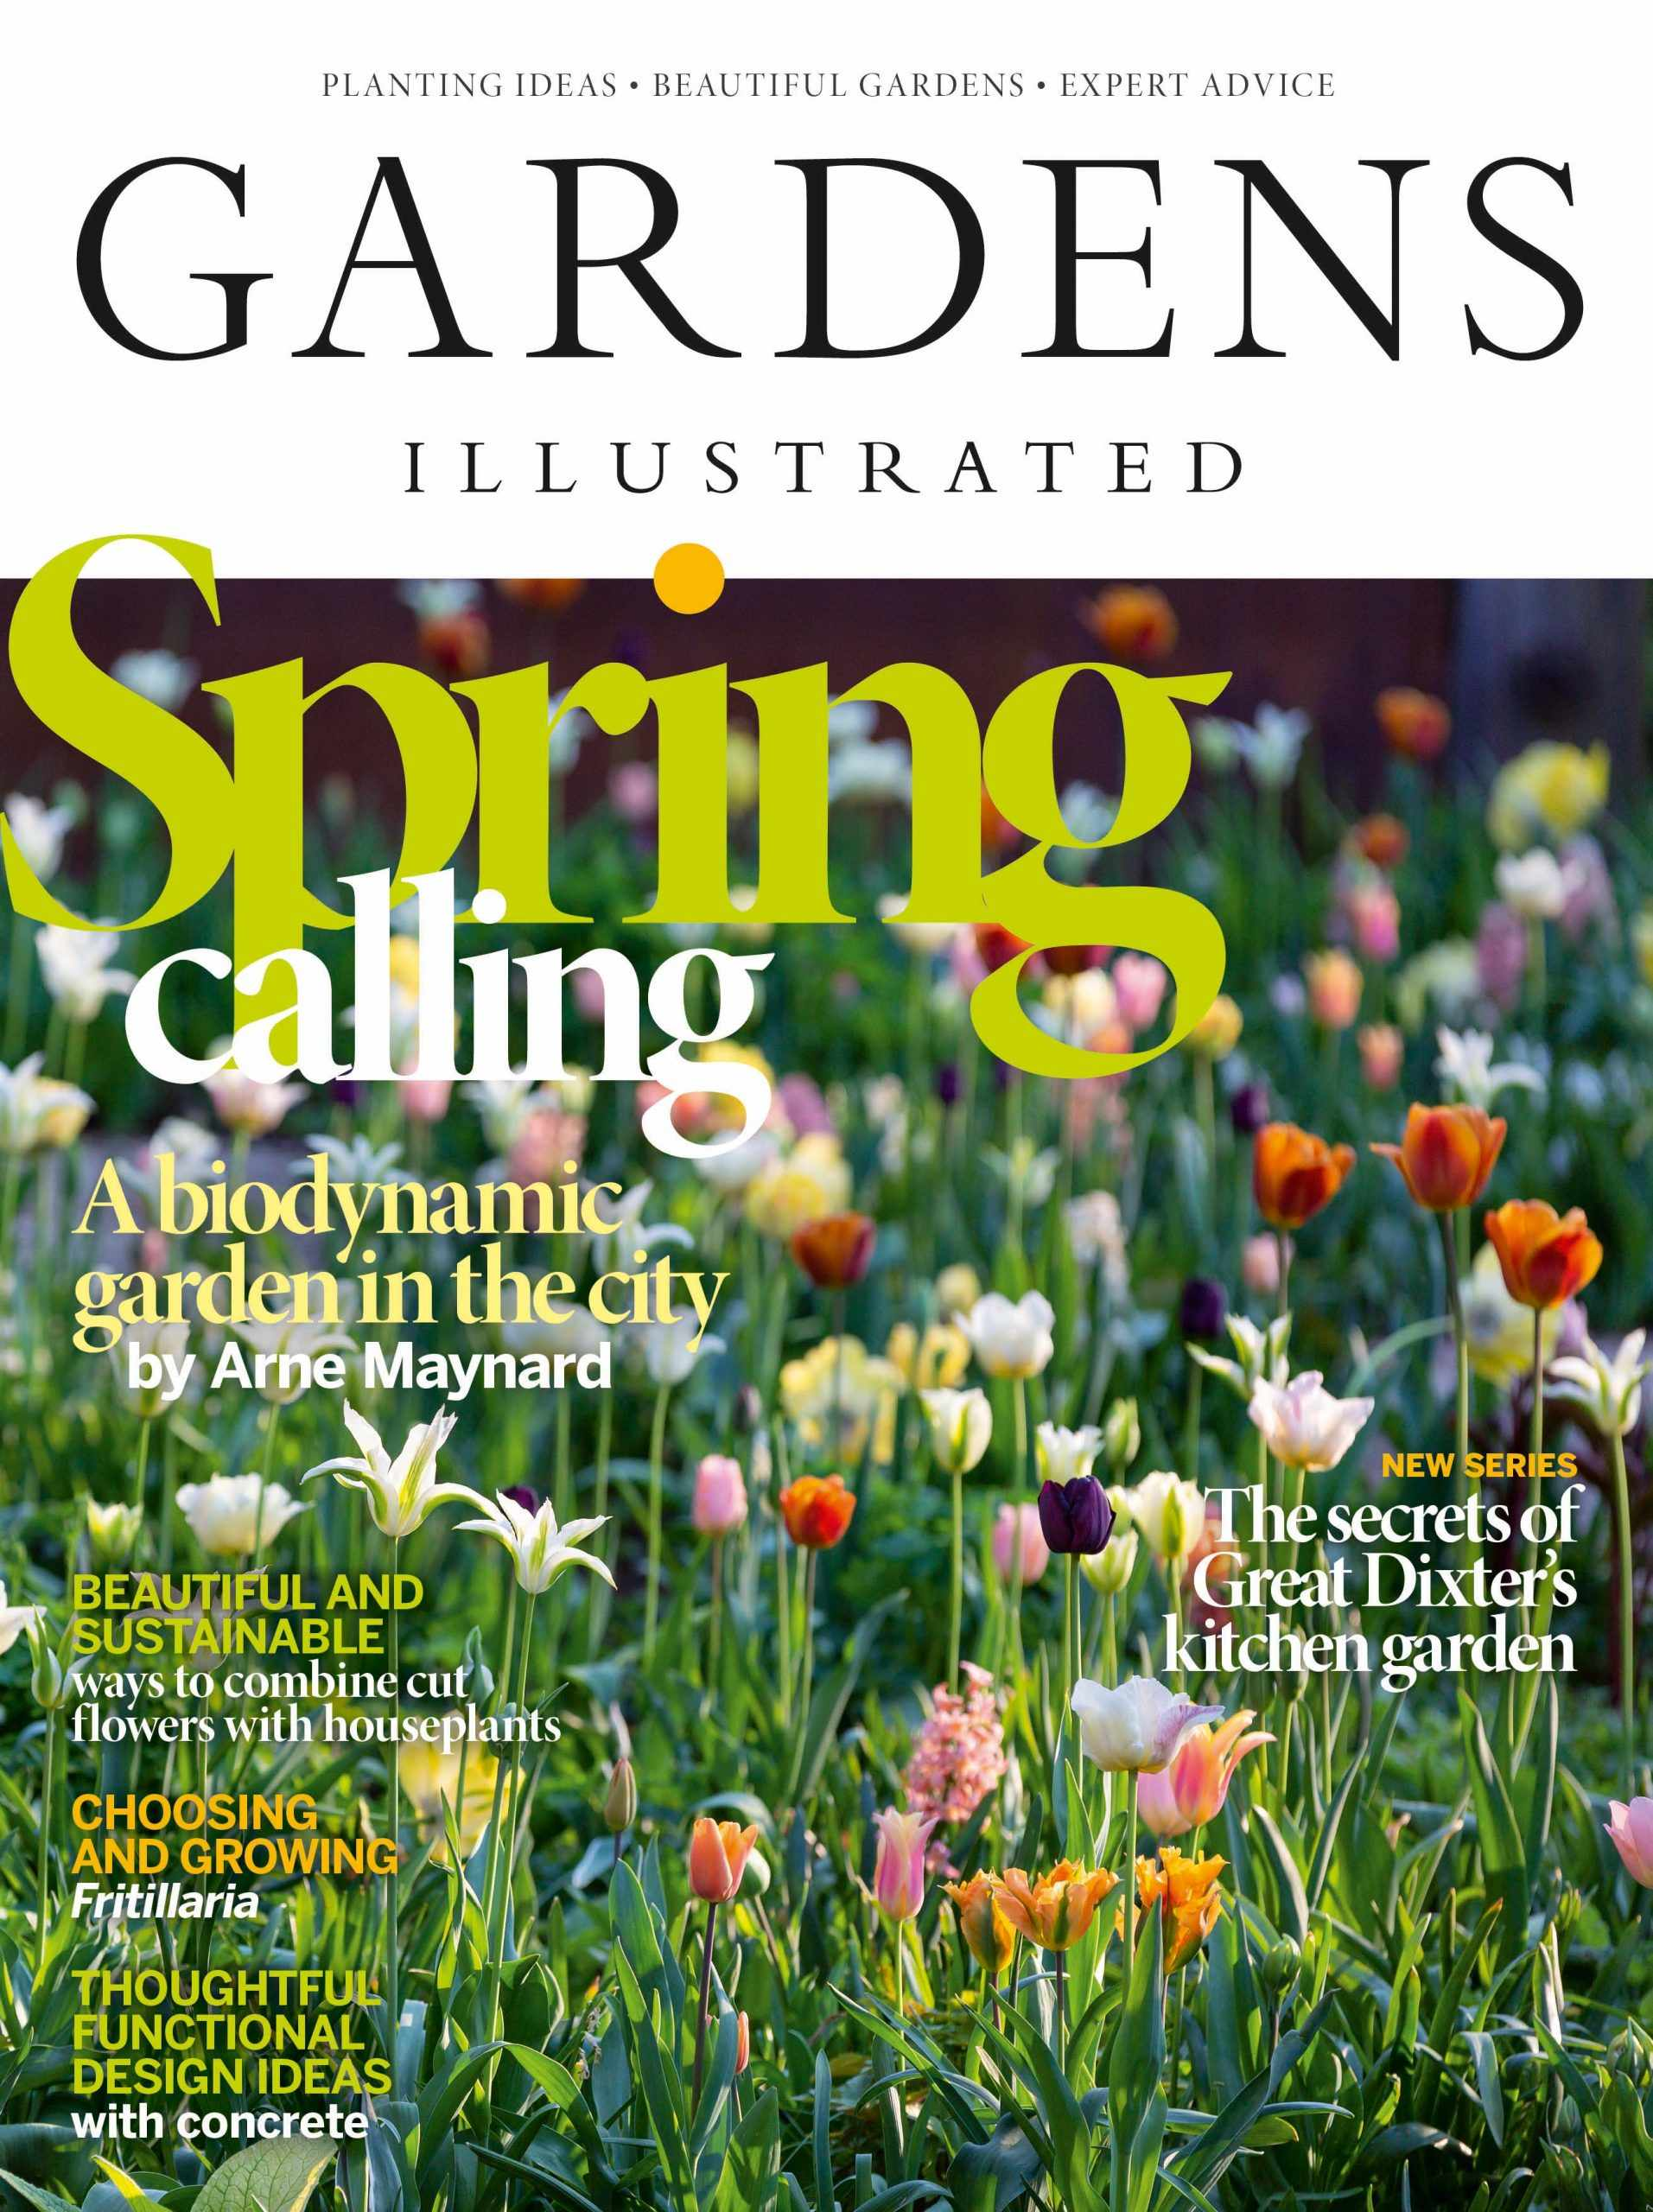 Gardens Illustrated April edition